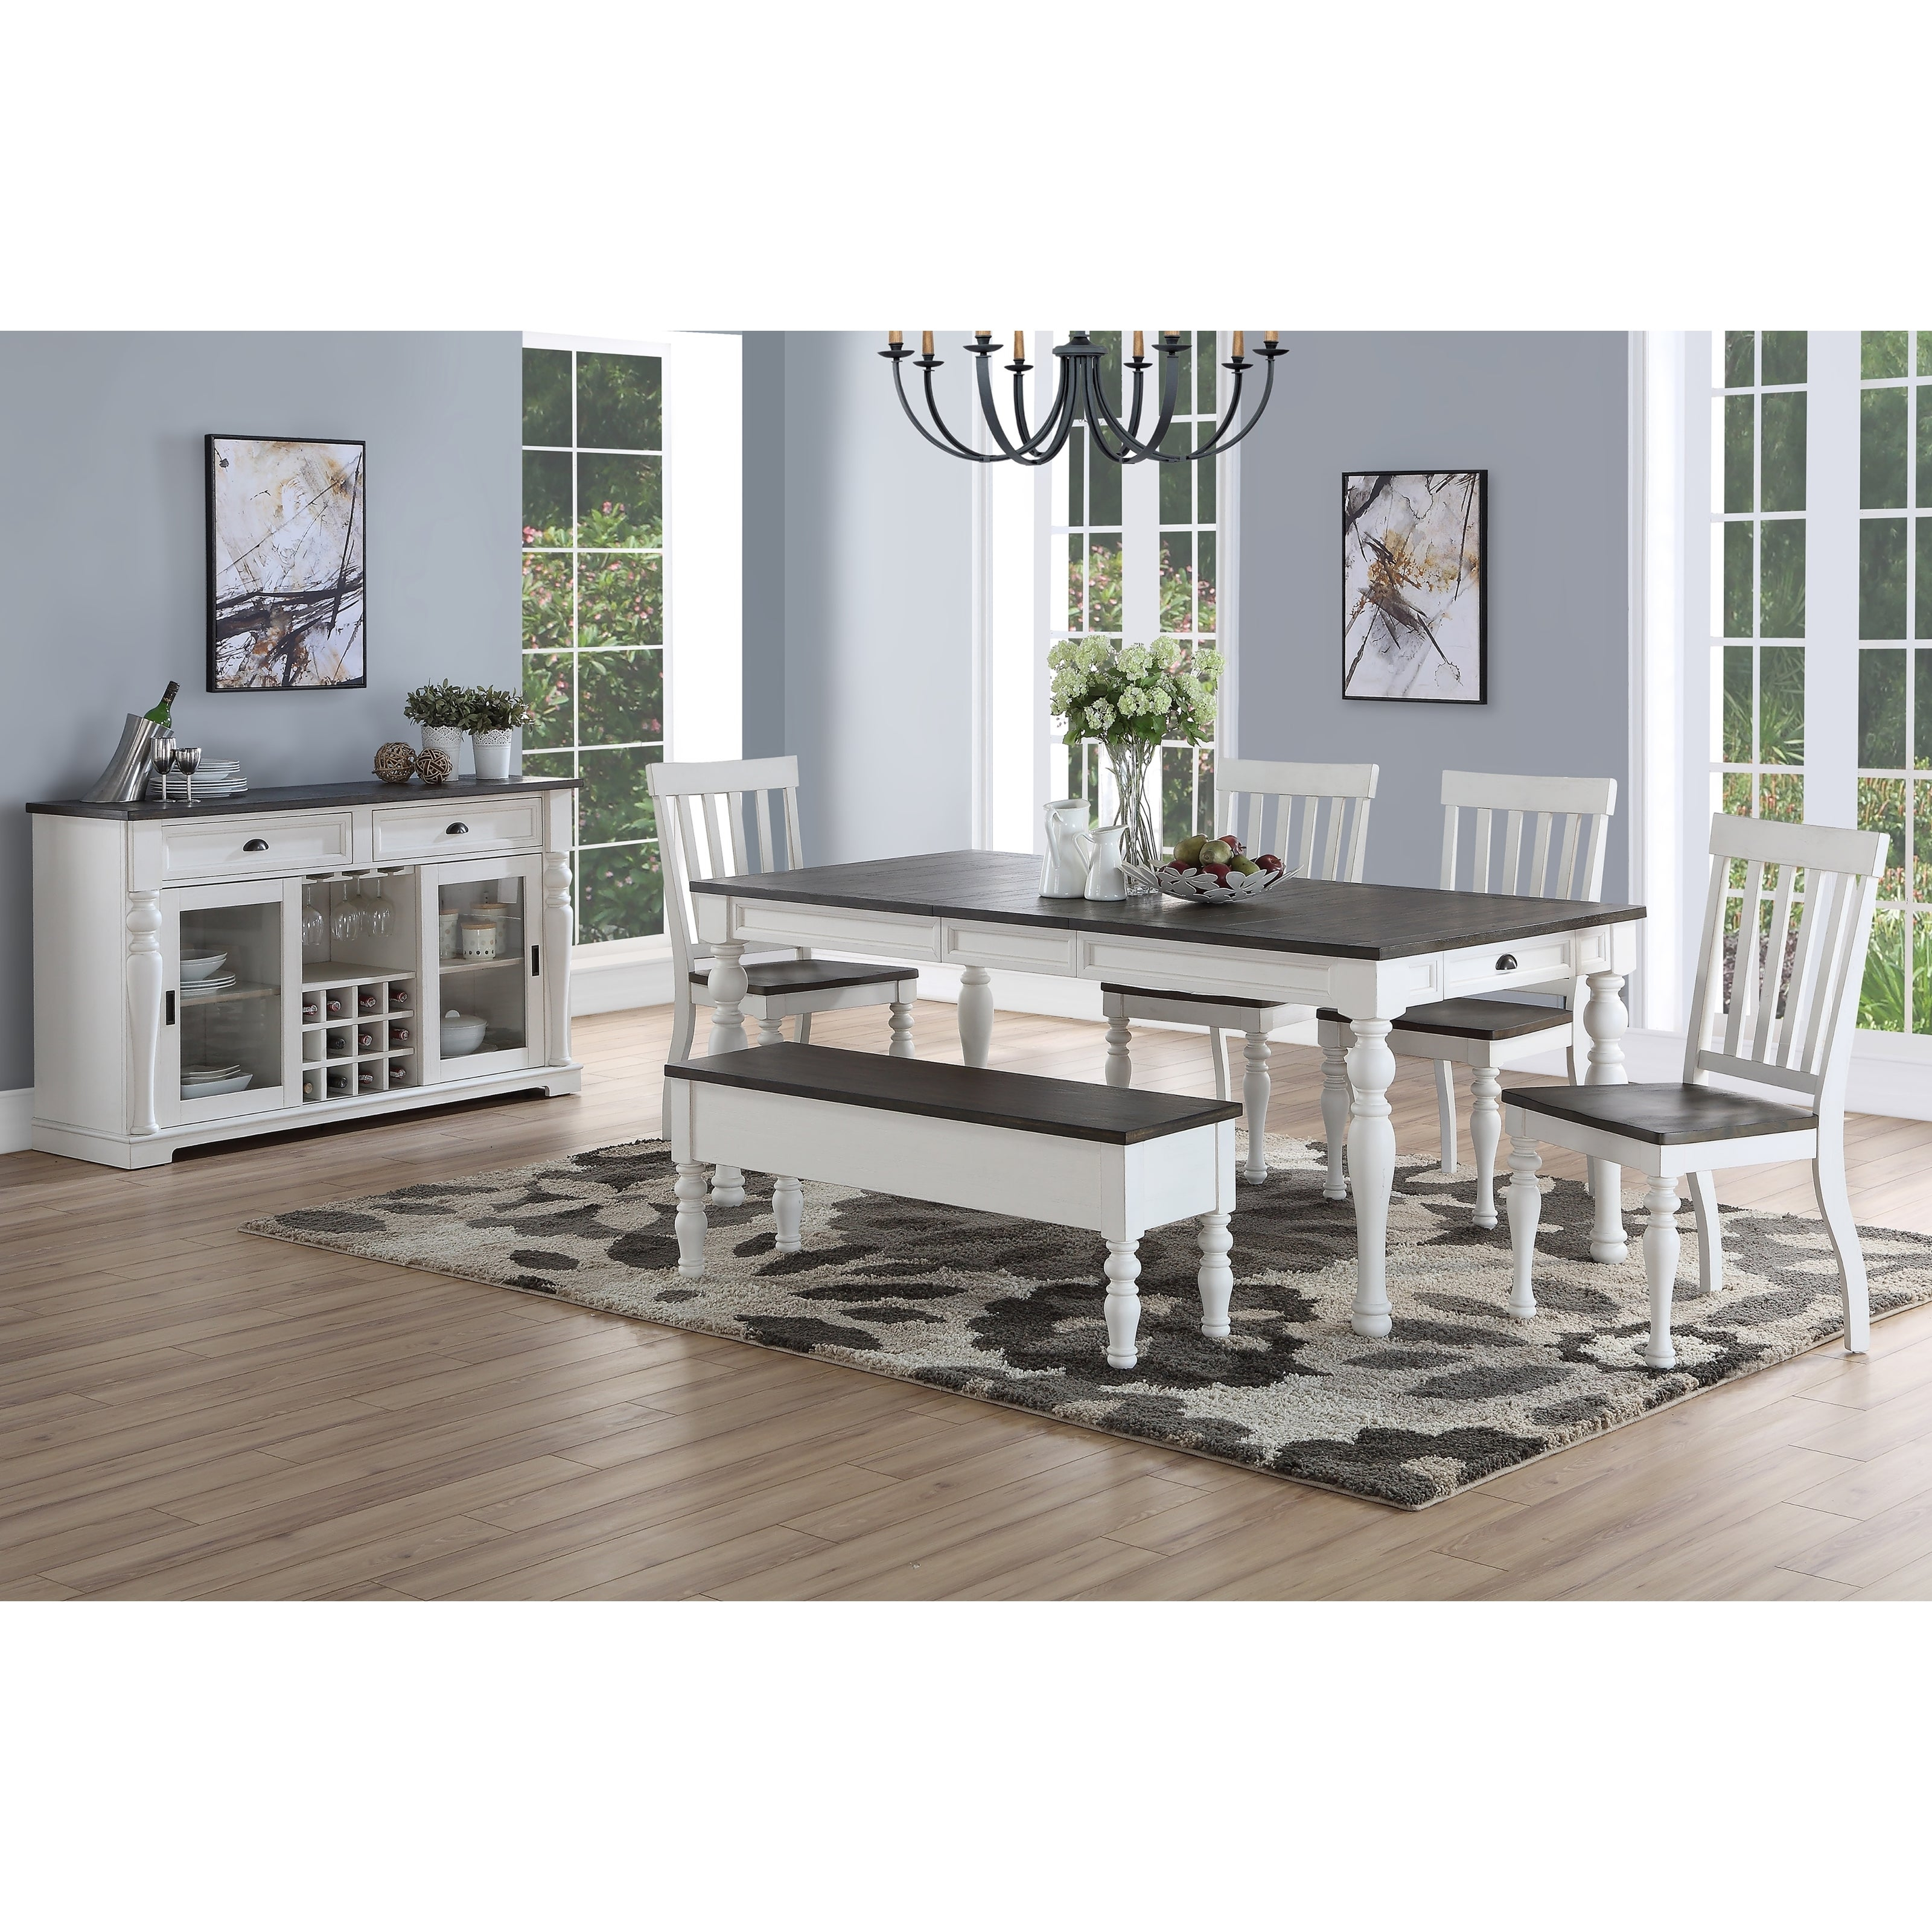 Our With Regard To Favorite Falmer 3 Piece Solid Wood Dining Sets (#15 of 20)